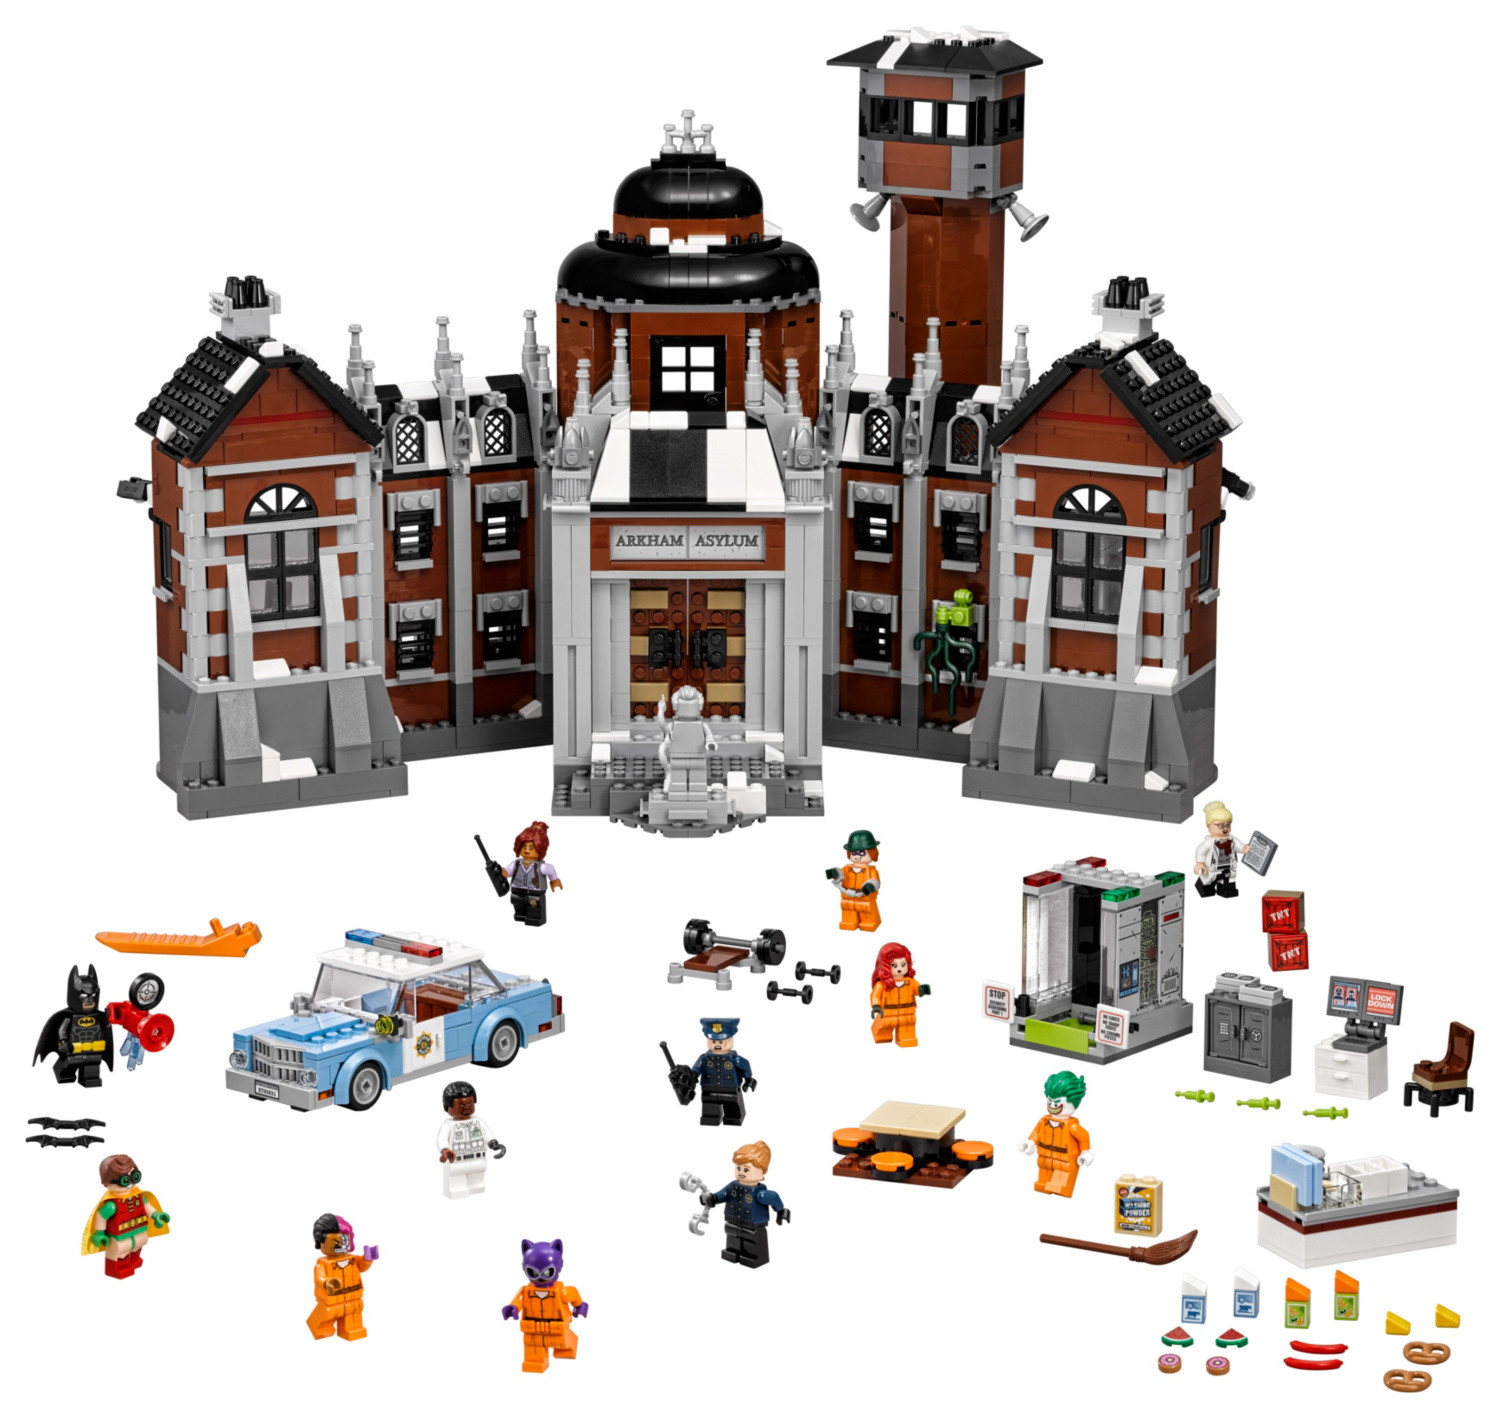 Arkham Asylum The Lego Batman Movie Set 70912